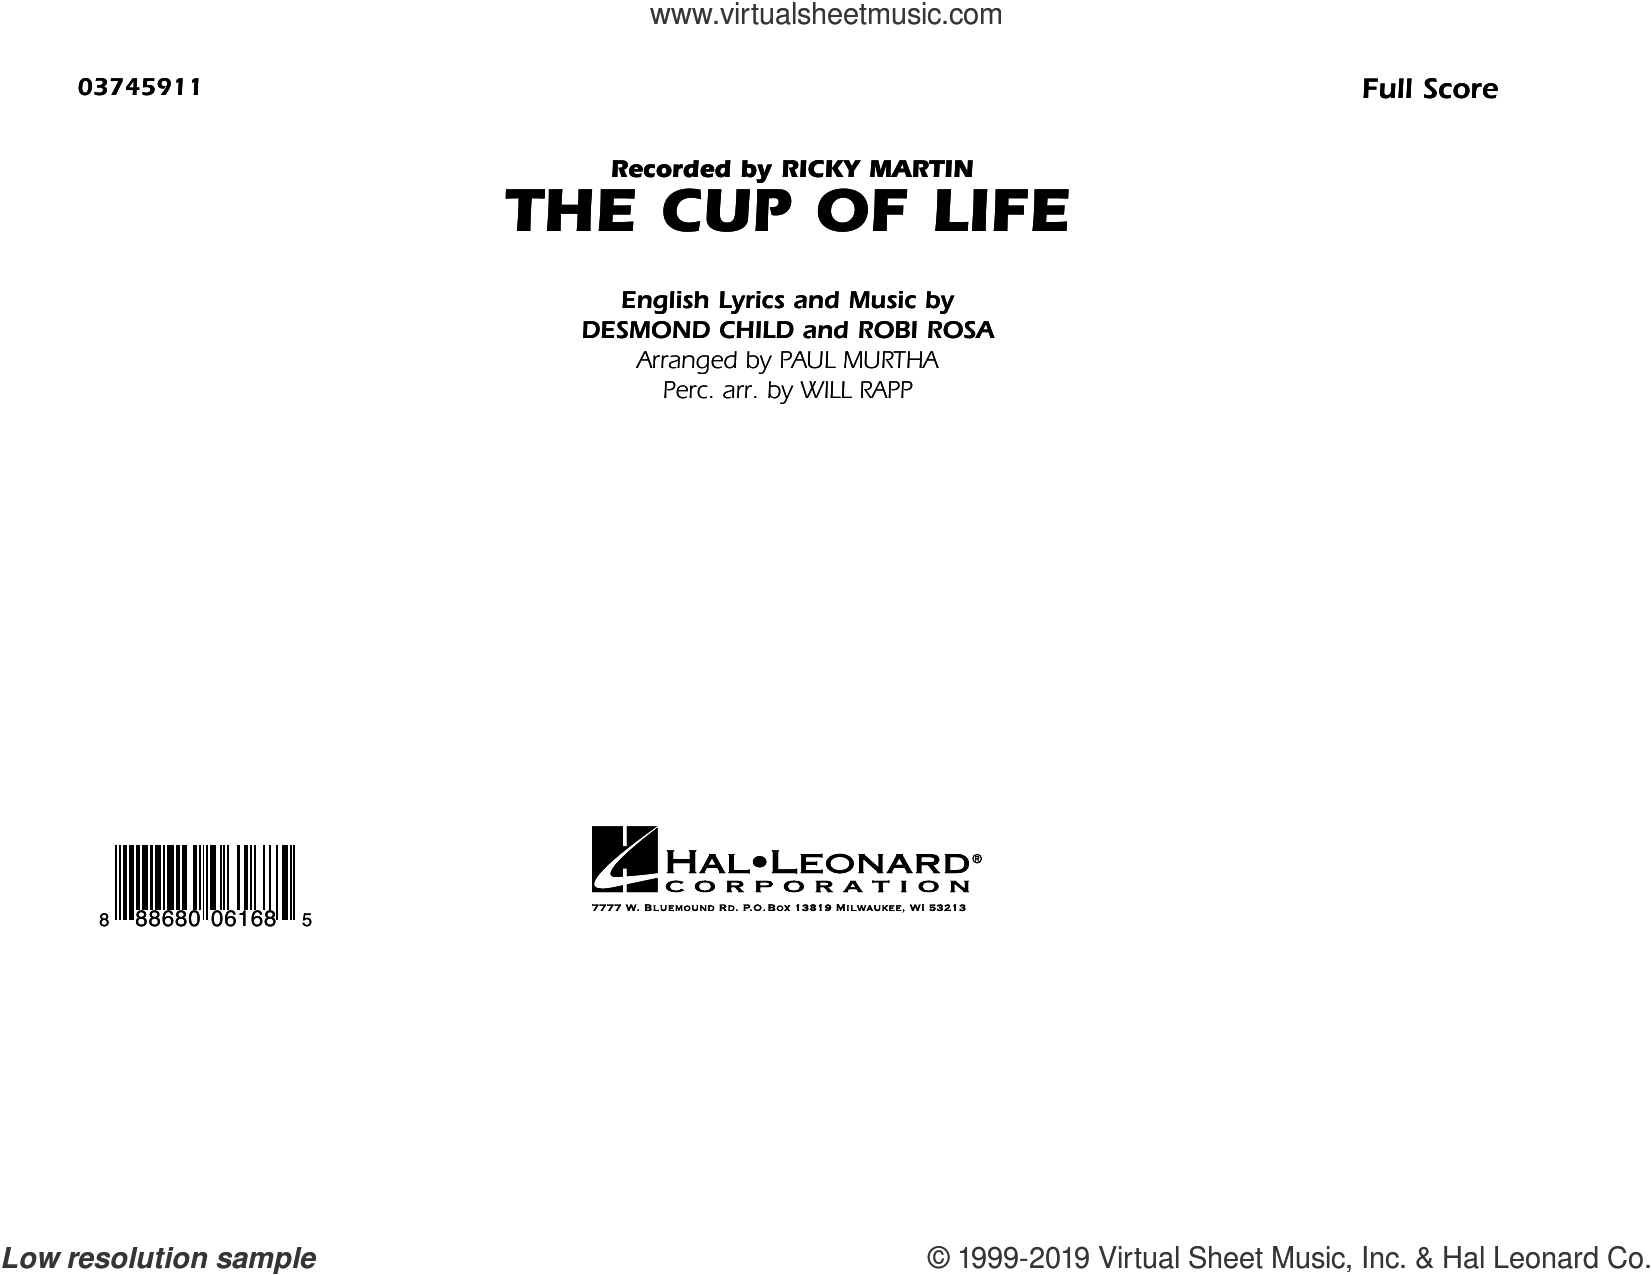 The Cup of Life (COMPLETE) sheet music for marching band by Paul Murtha, Desmond Child, Ricky Martin and Robi Rosa, intermediate skill level